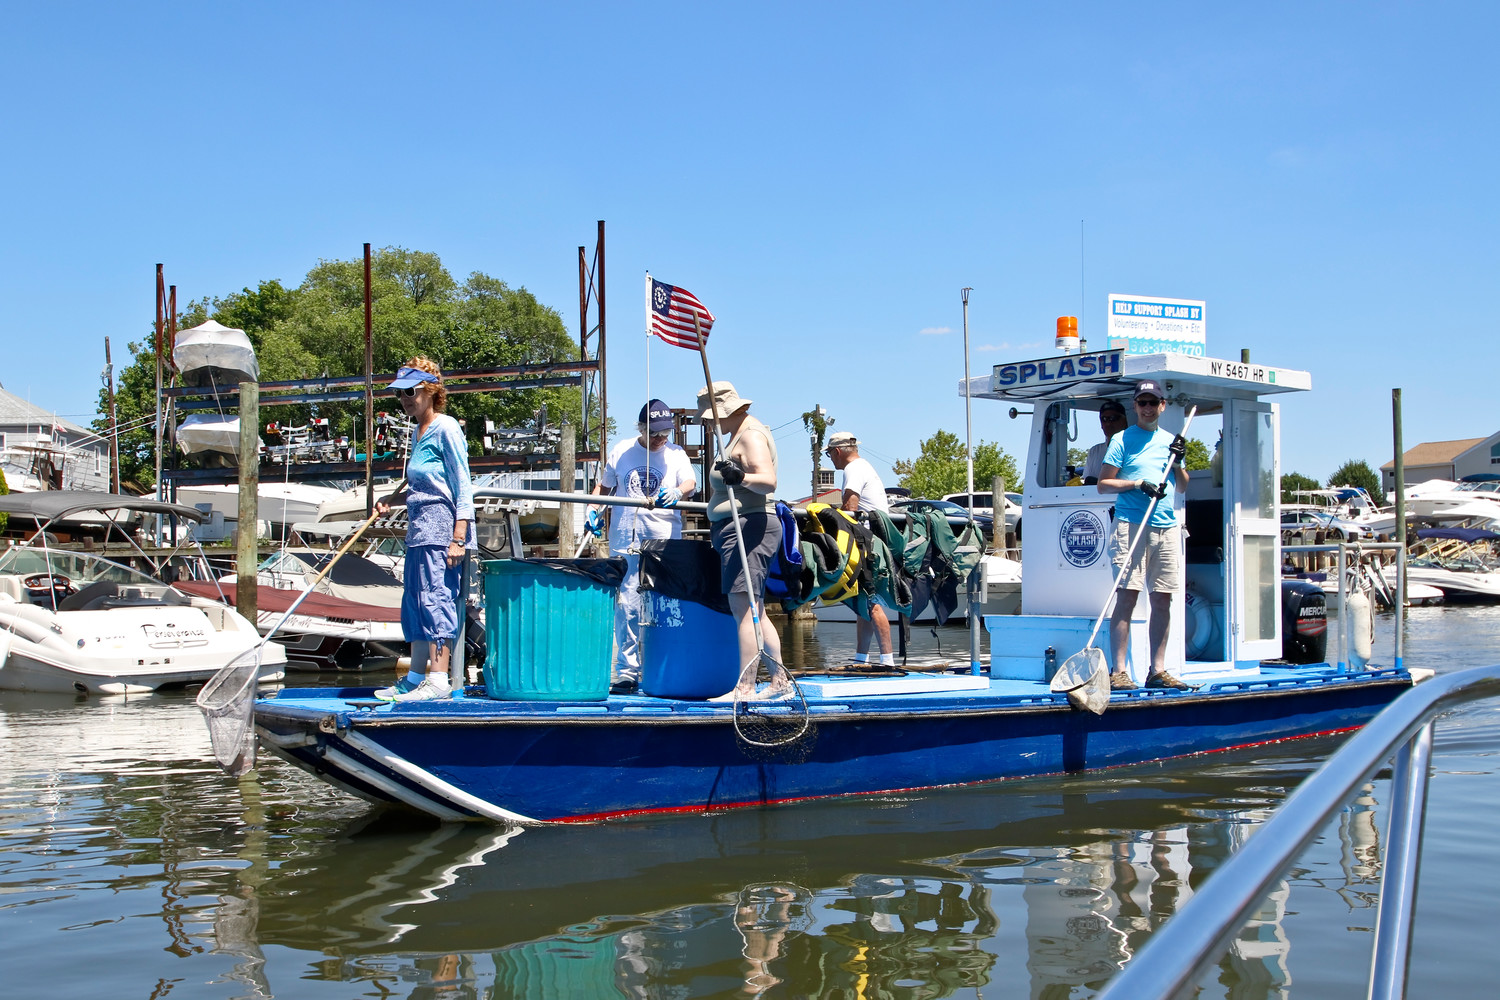 Sonny's Canal House and Operation SPLASH partnered for the second year in a row to host a bay and canal cleanup in Baldwin Harbor. Last year they pulled out 1,500 pounds of garbage. This year they hauled out XXXX